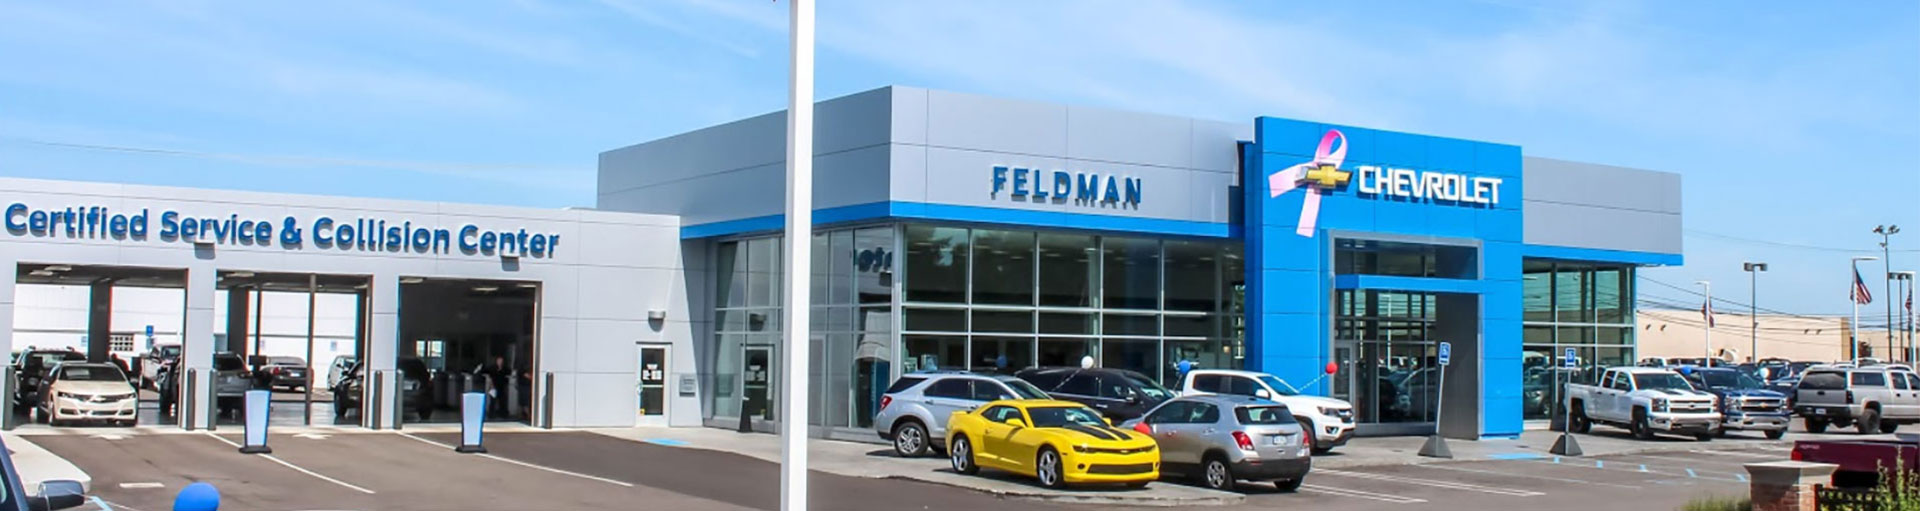 Recall Service Department Feldman Chevrolet Of Livonia Mi